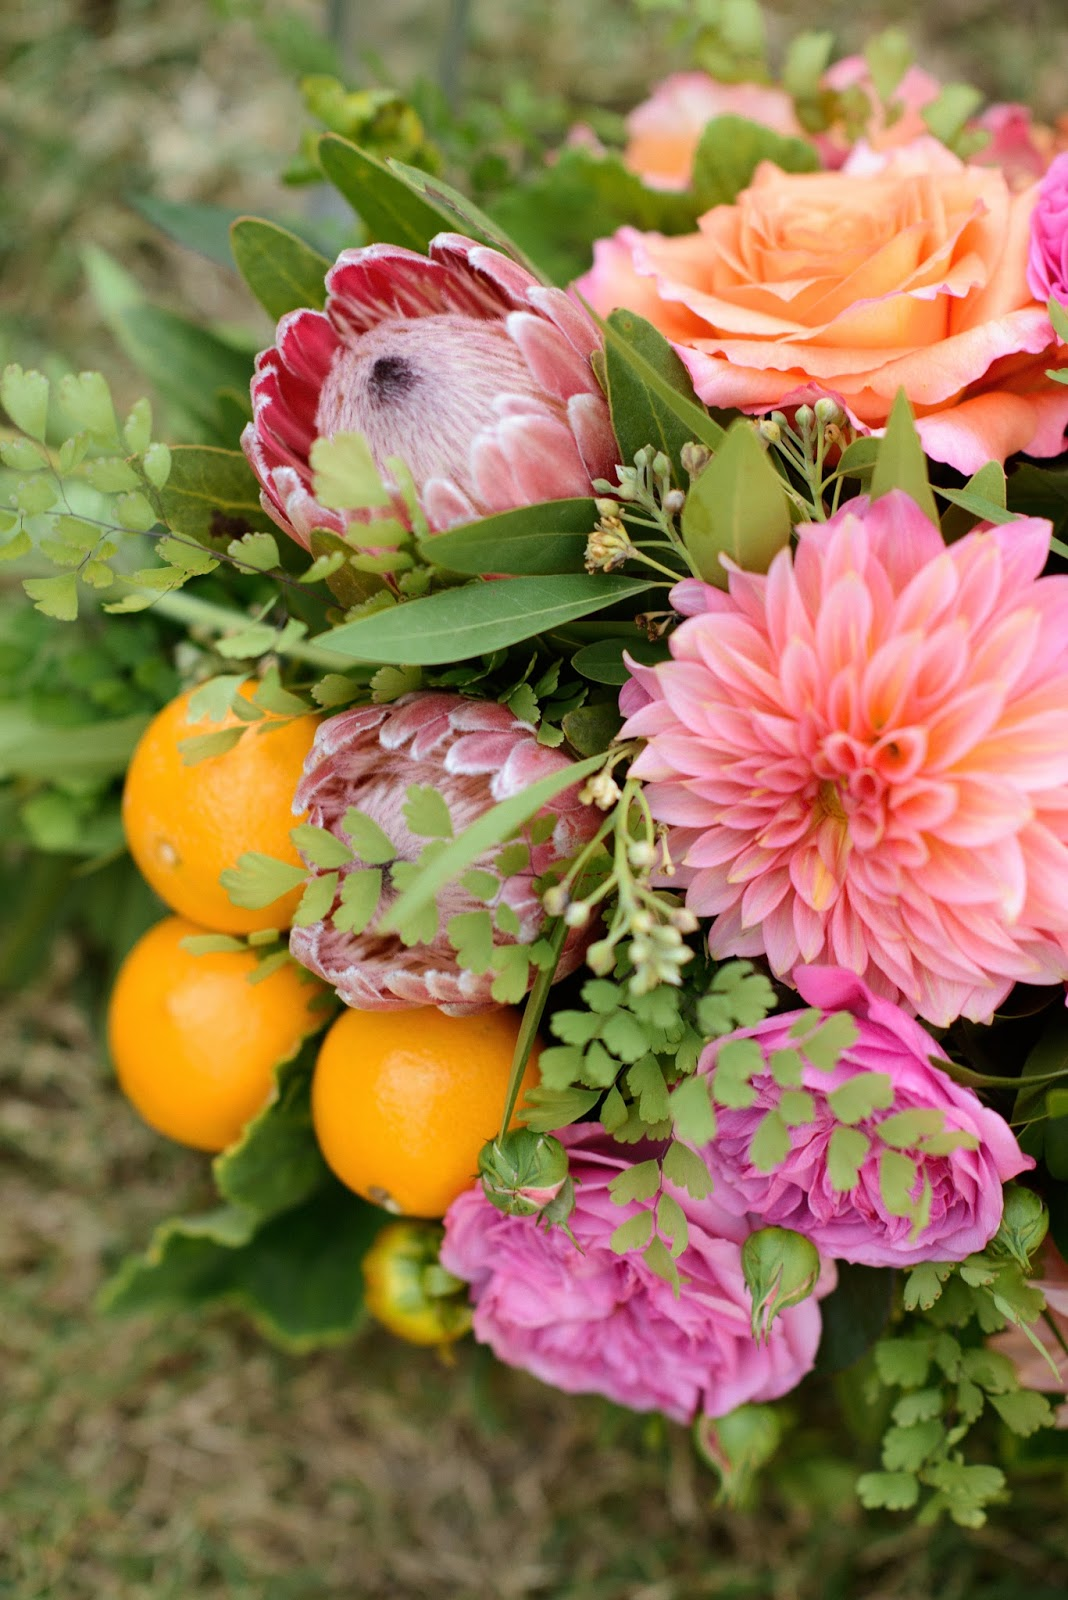 Palm springs flowers choice image flower decoration ideas palm springs flowers image collections flower decoration ideas flowers palm springs gallery flower decoration ideas palm mightylinksfo